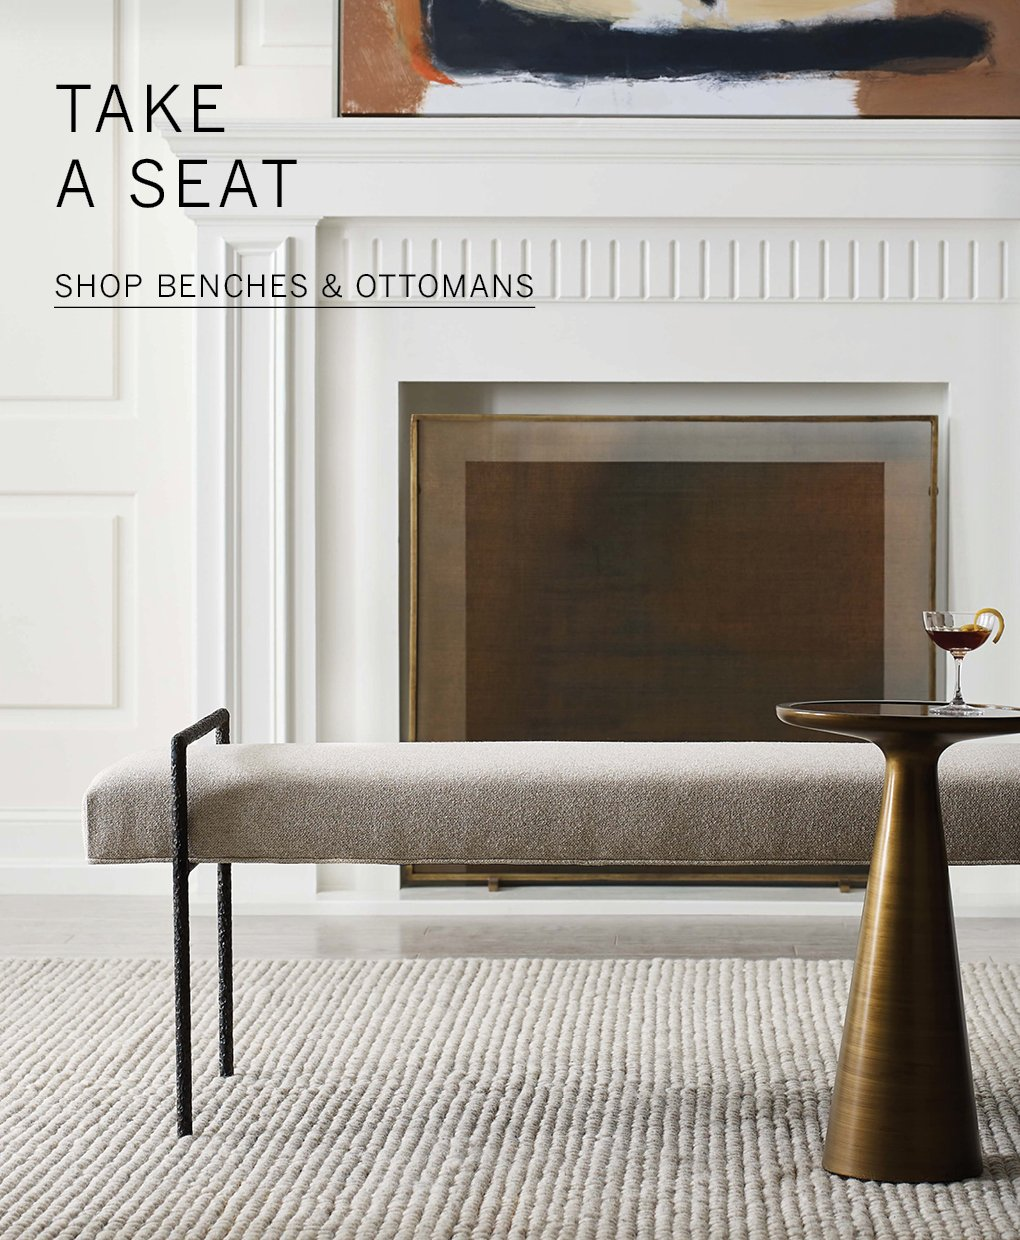 Shop Benches & Ottomans